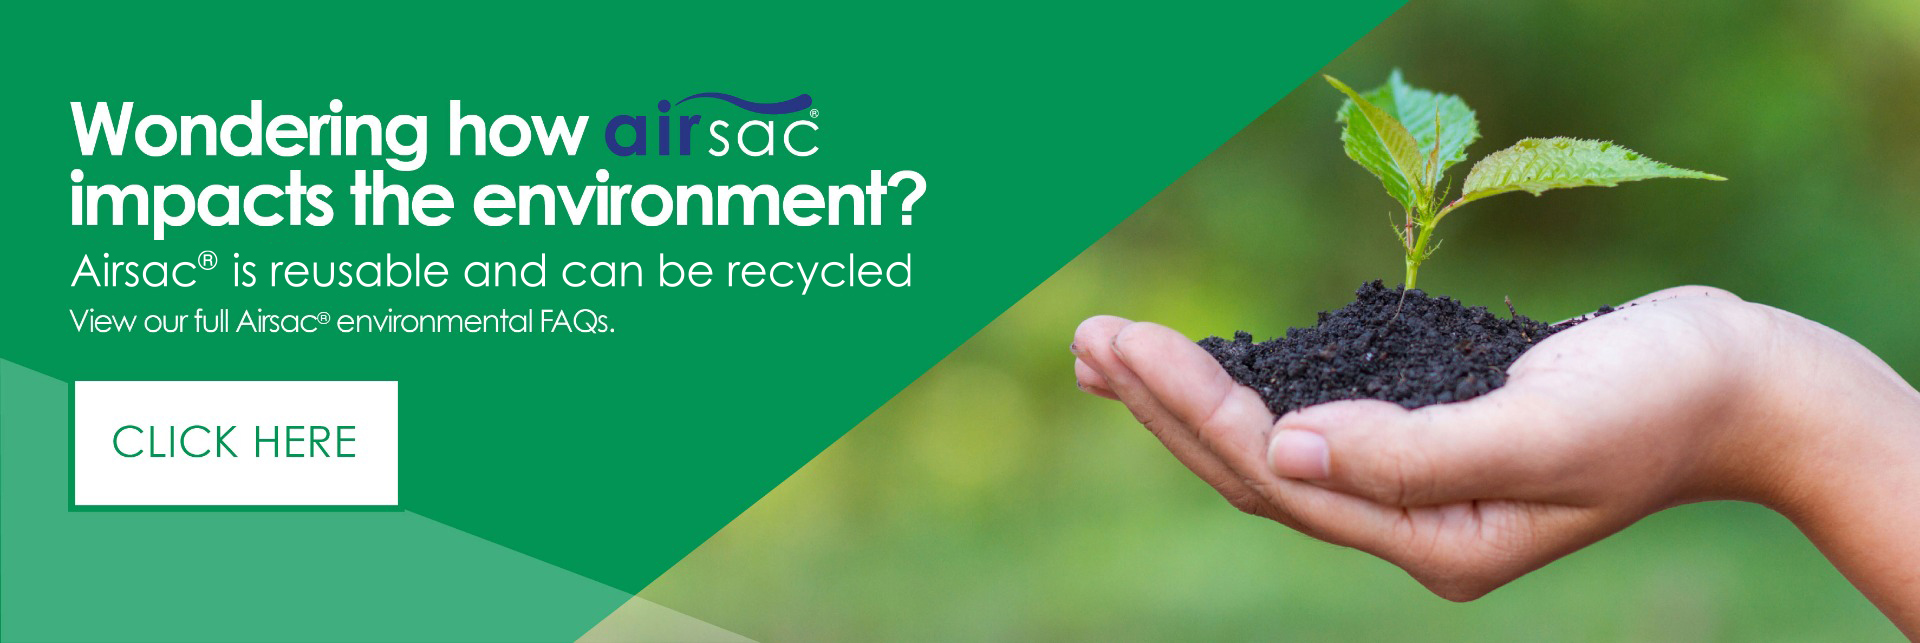 Airsac and the environment